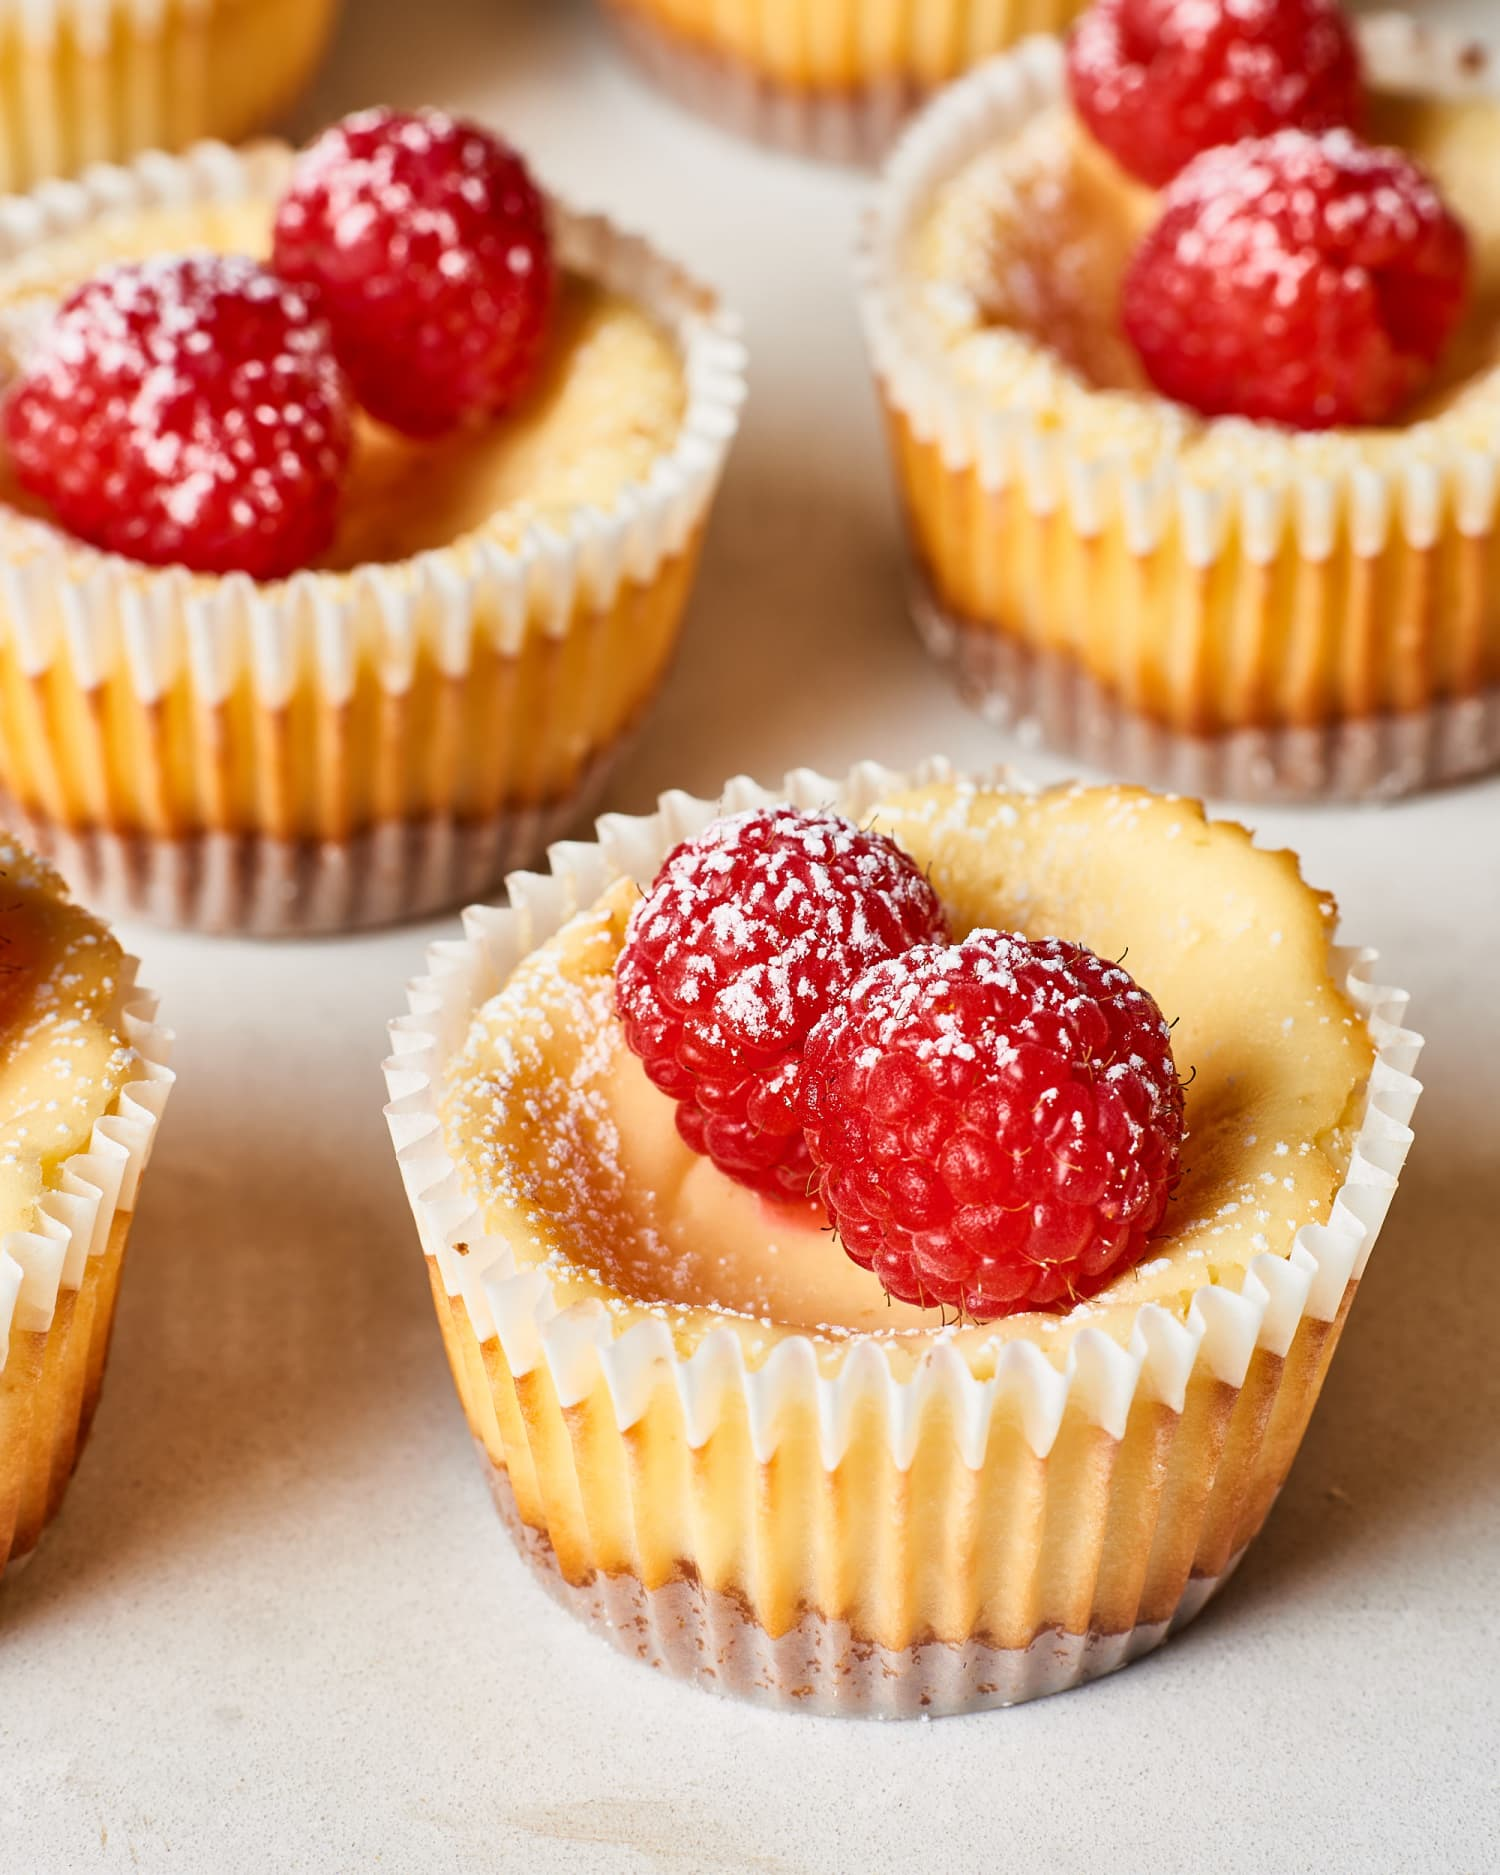 10 Easy Desserts You Can Make in a Muffin Tin